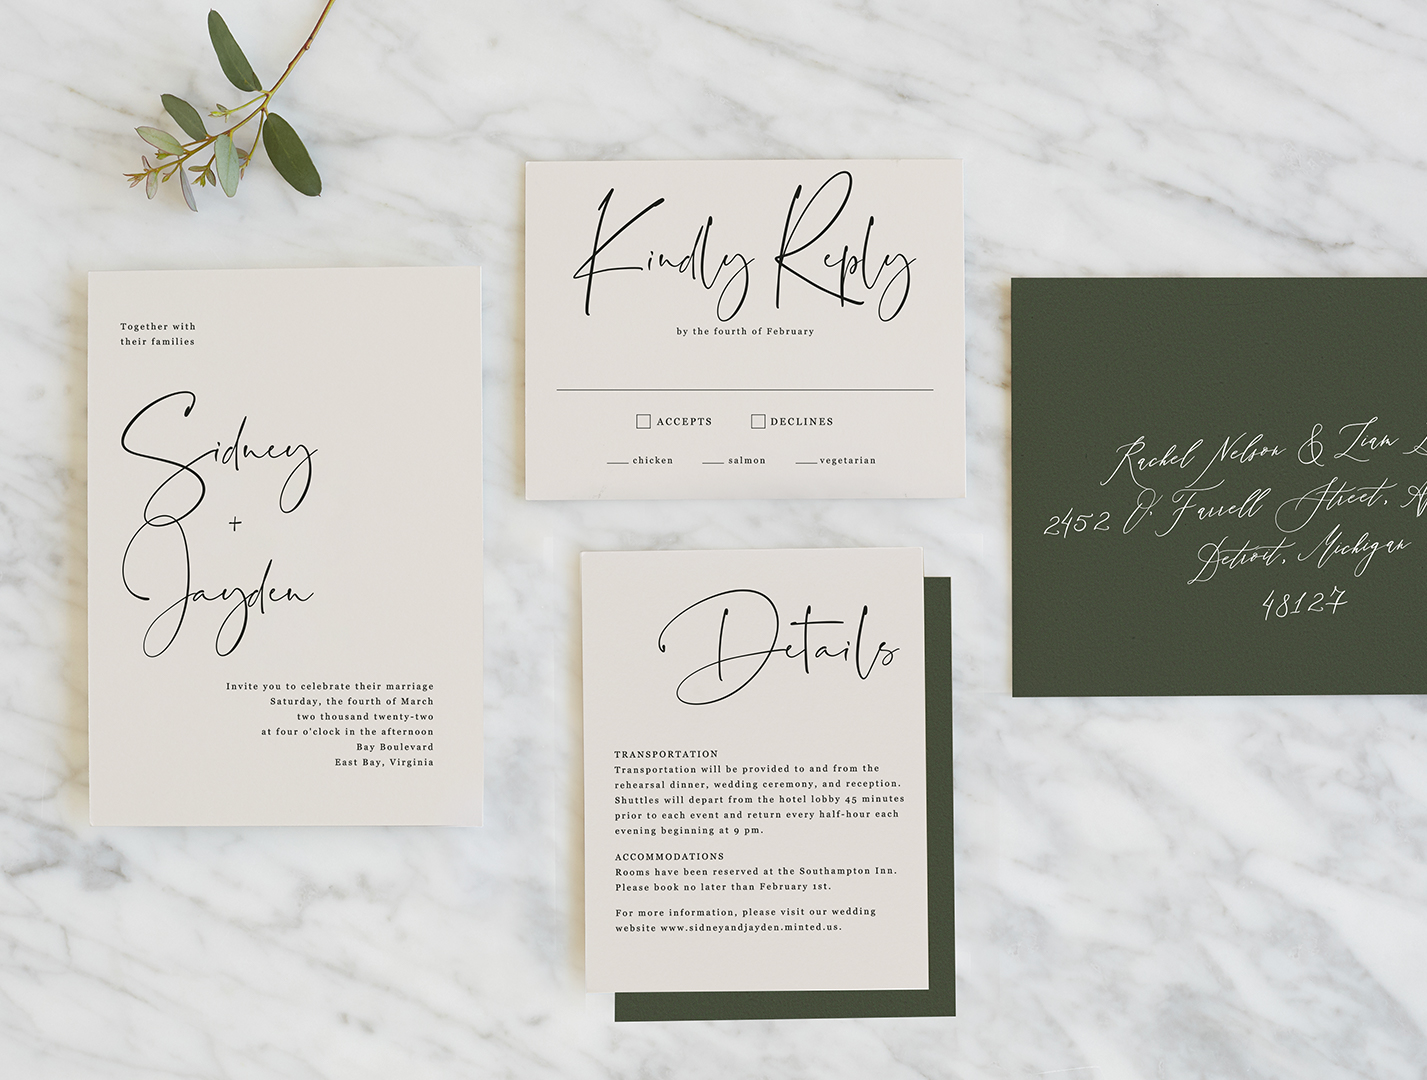 Invitations from Minted